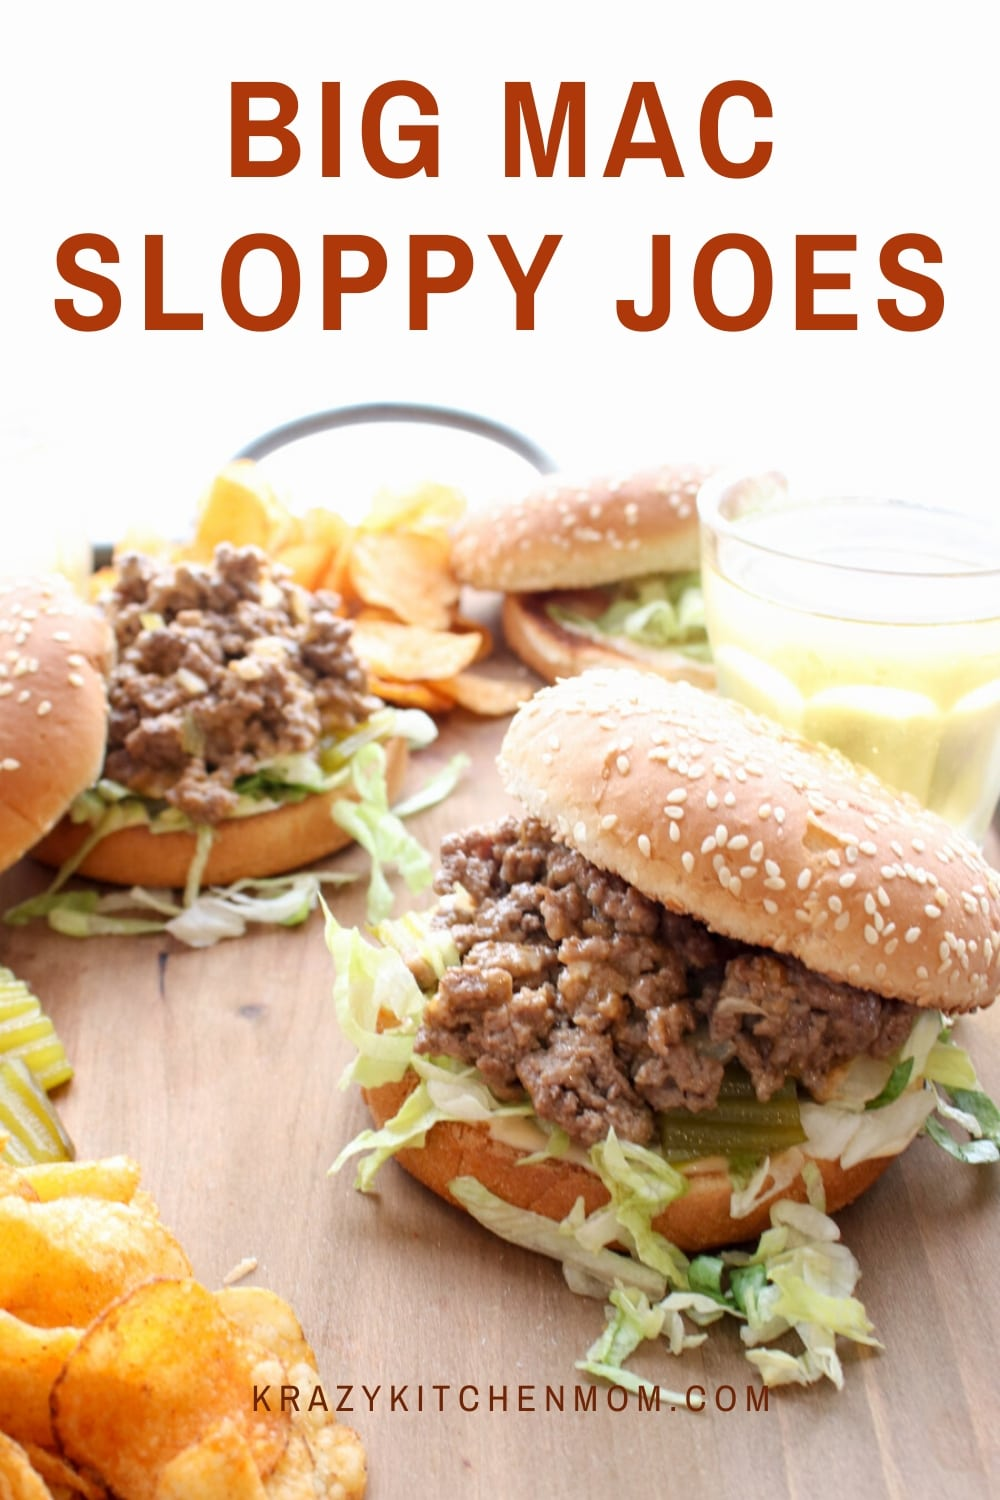 Roll up your sleeves because you are going to want to dig into theseBig Mac Sloppy Joeswith both hands. The recipe comes together in under 15 minutes and it tastes EXACTLY like a Big Mac! via @krazykitchenmom